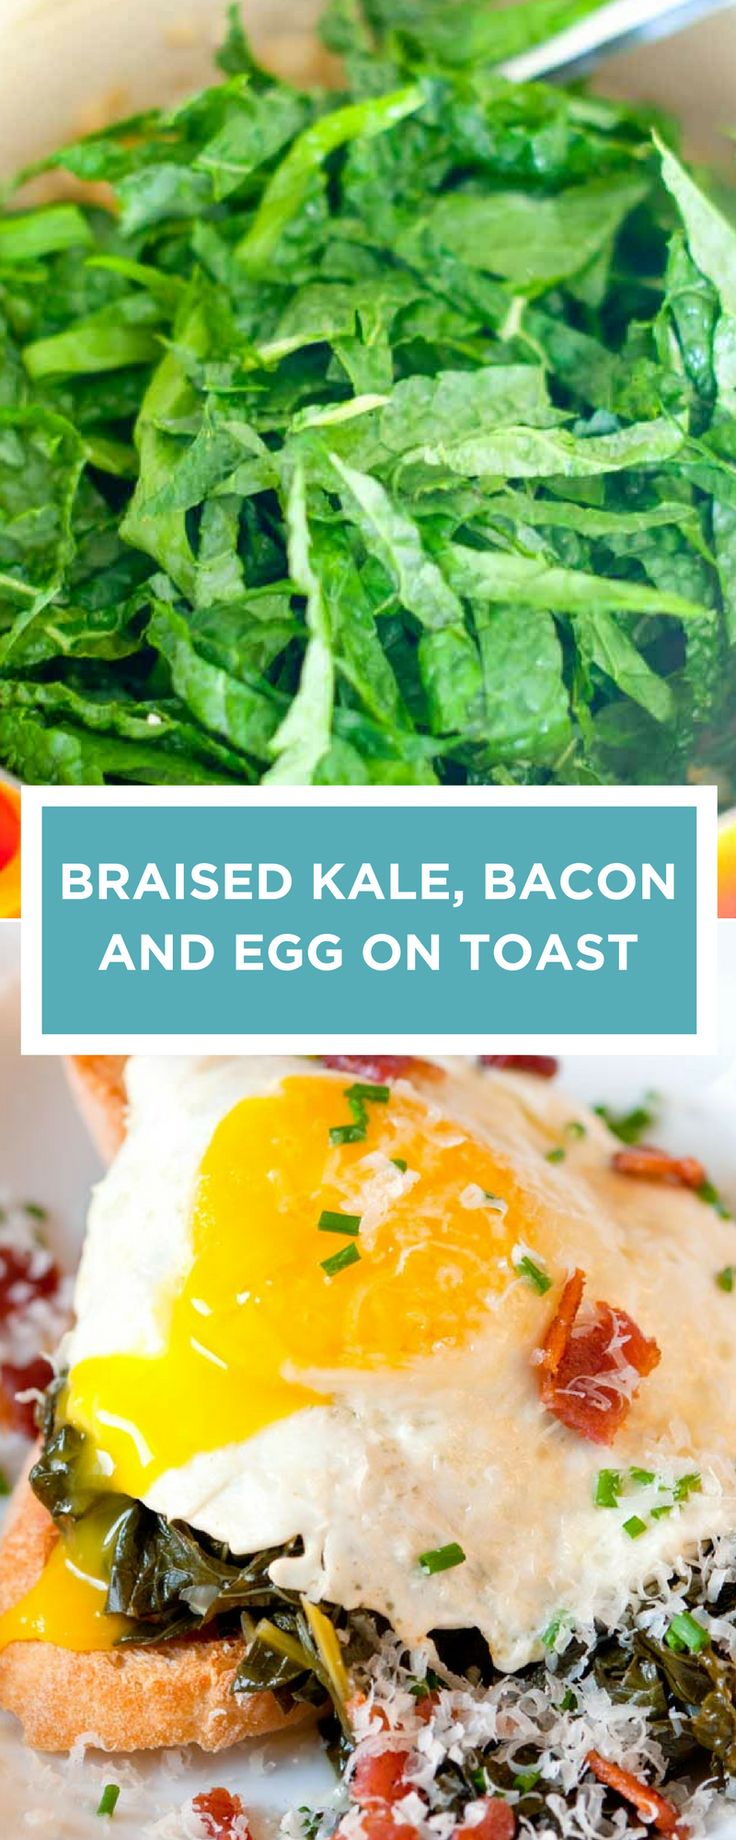 Kale is braised for about 30 minutes with bacon, chicken stock, onion and garlic — making it rich, hearty and full of flavor. Then we pile it onto a thick piece of toast and top with egg. Perfect for breakfast, lunch or dinner. #egg #toast